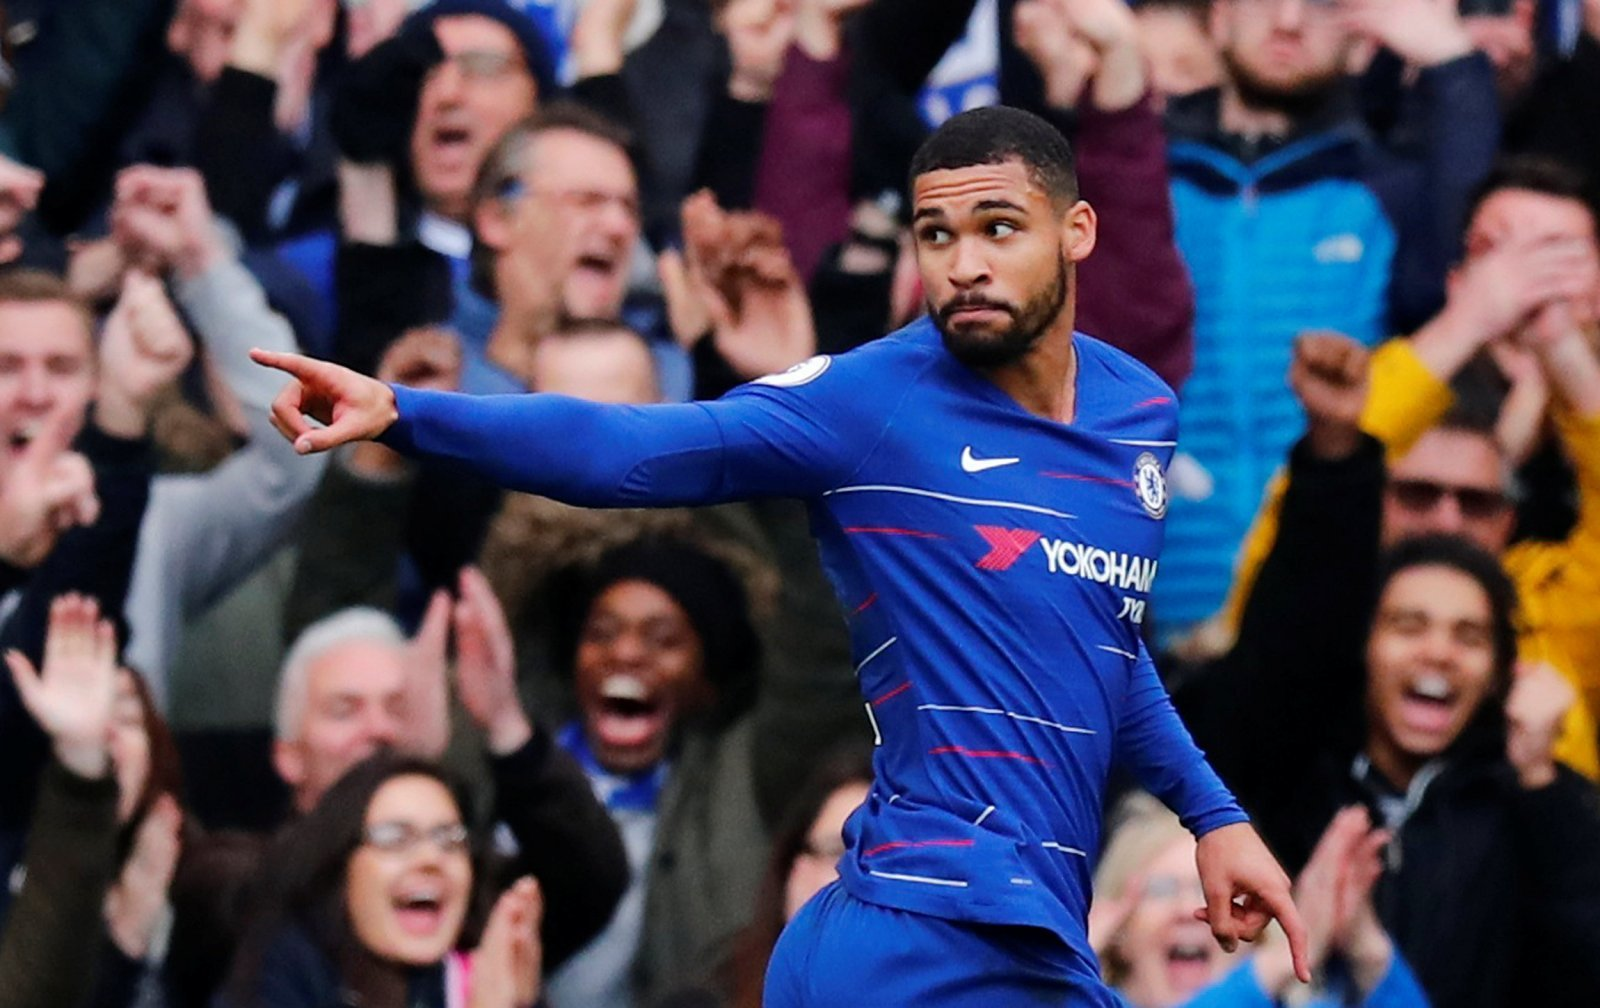 If Ruben Loftus-Cheek doesn't star under Sarri now, he simply never will